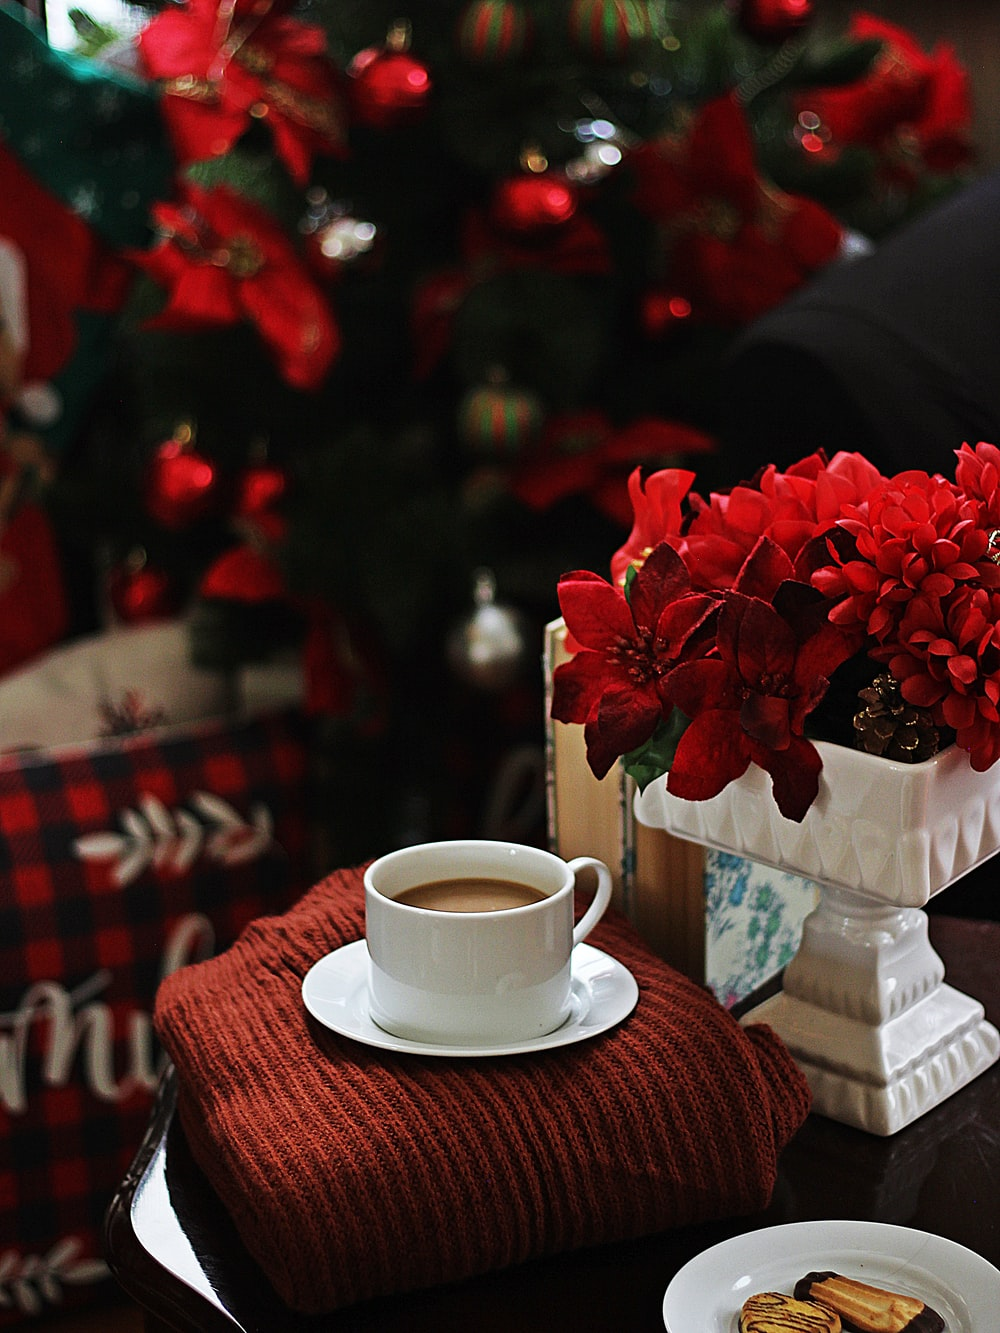 red roses on white ceramic teacup on red and white checkered table cloth